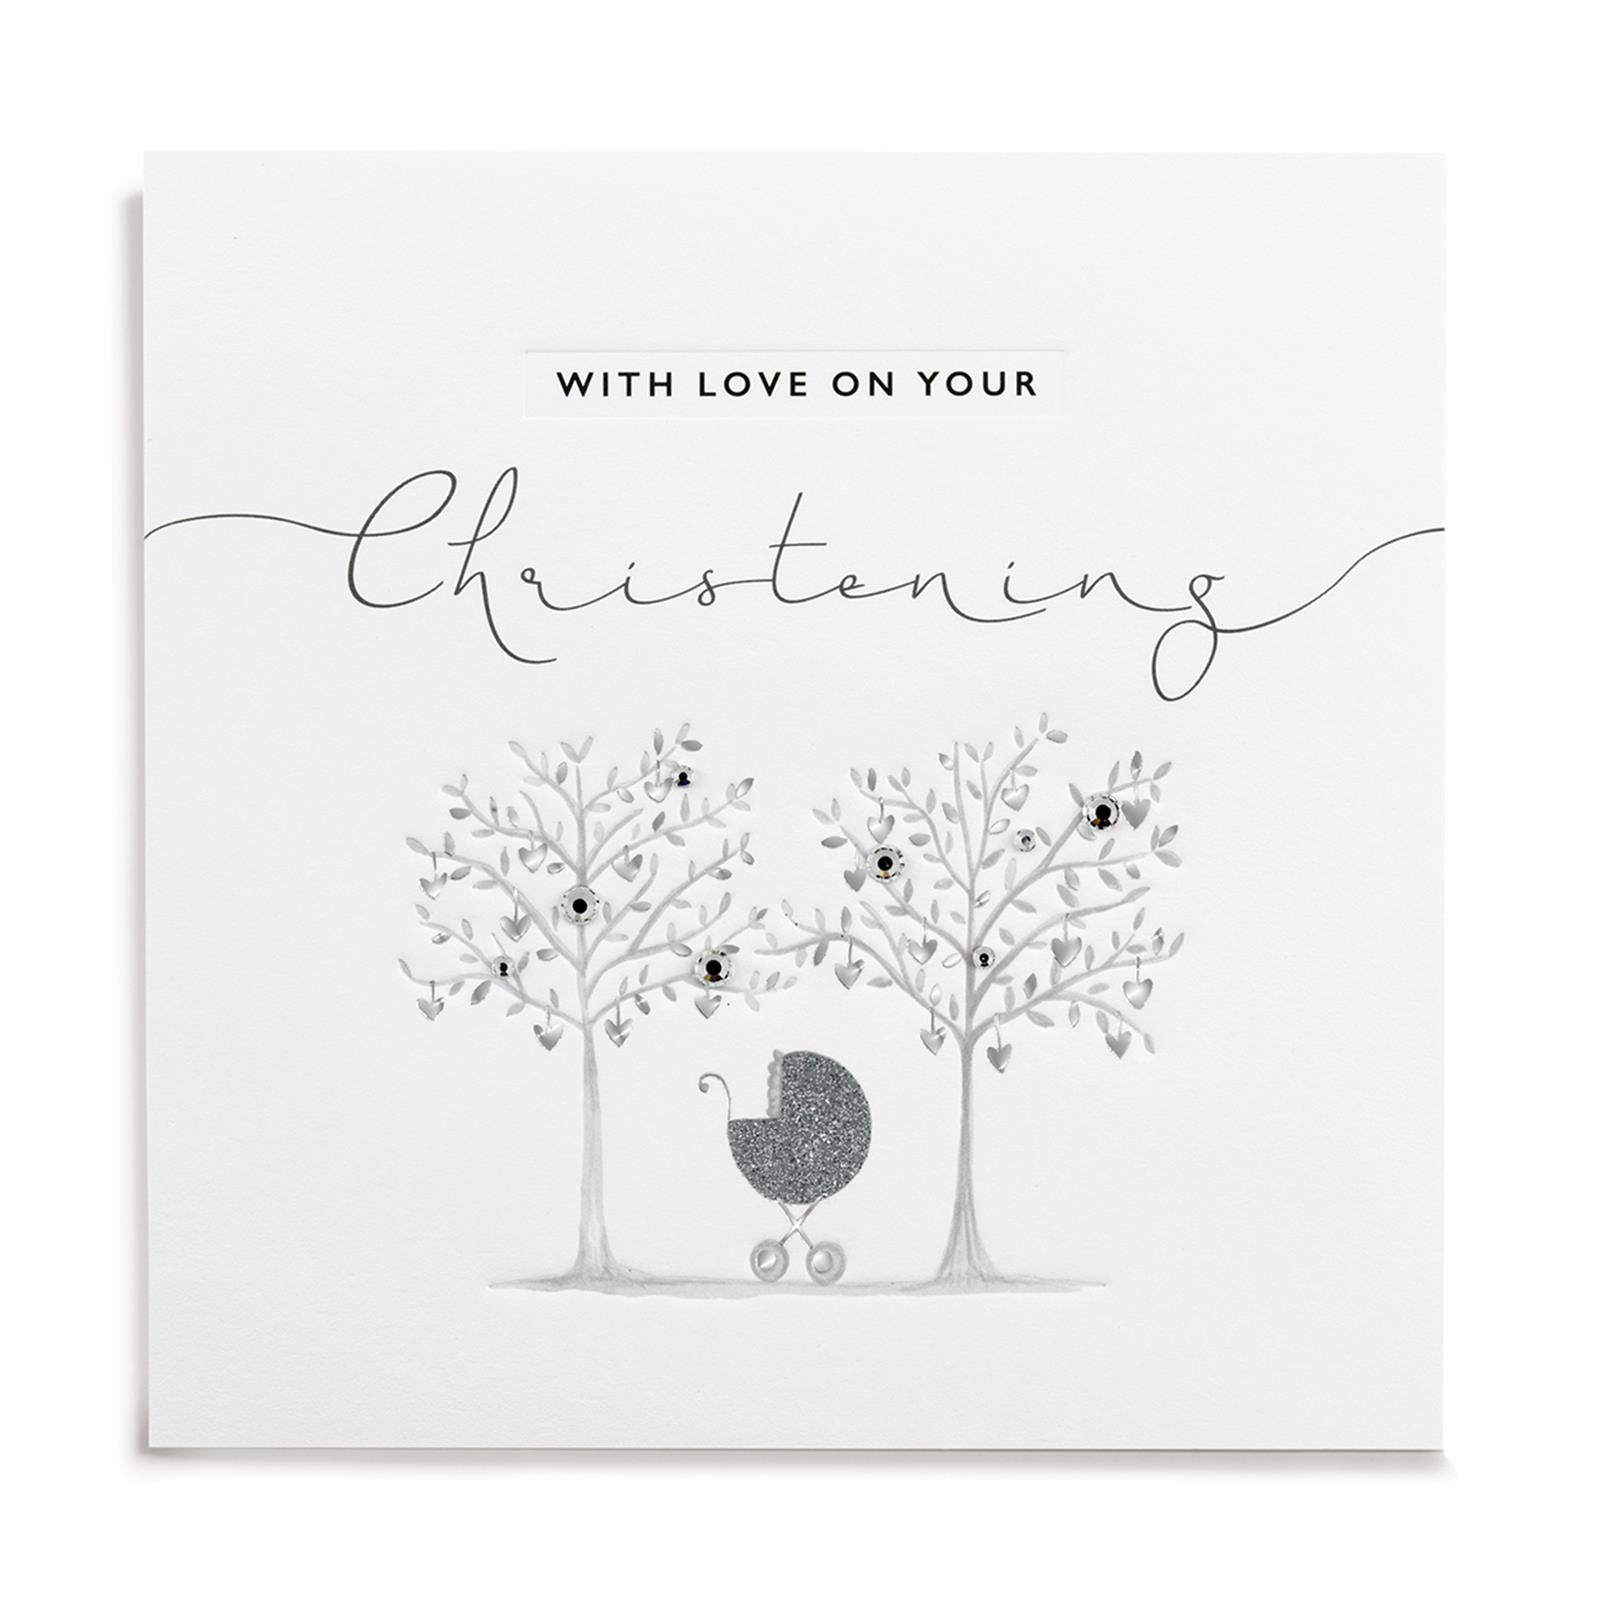 Janie Wilson Silver Leaf With Love Christening Card